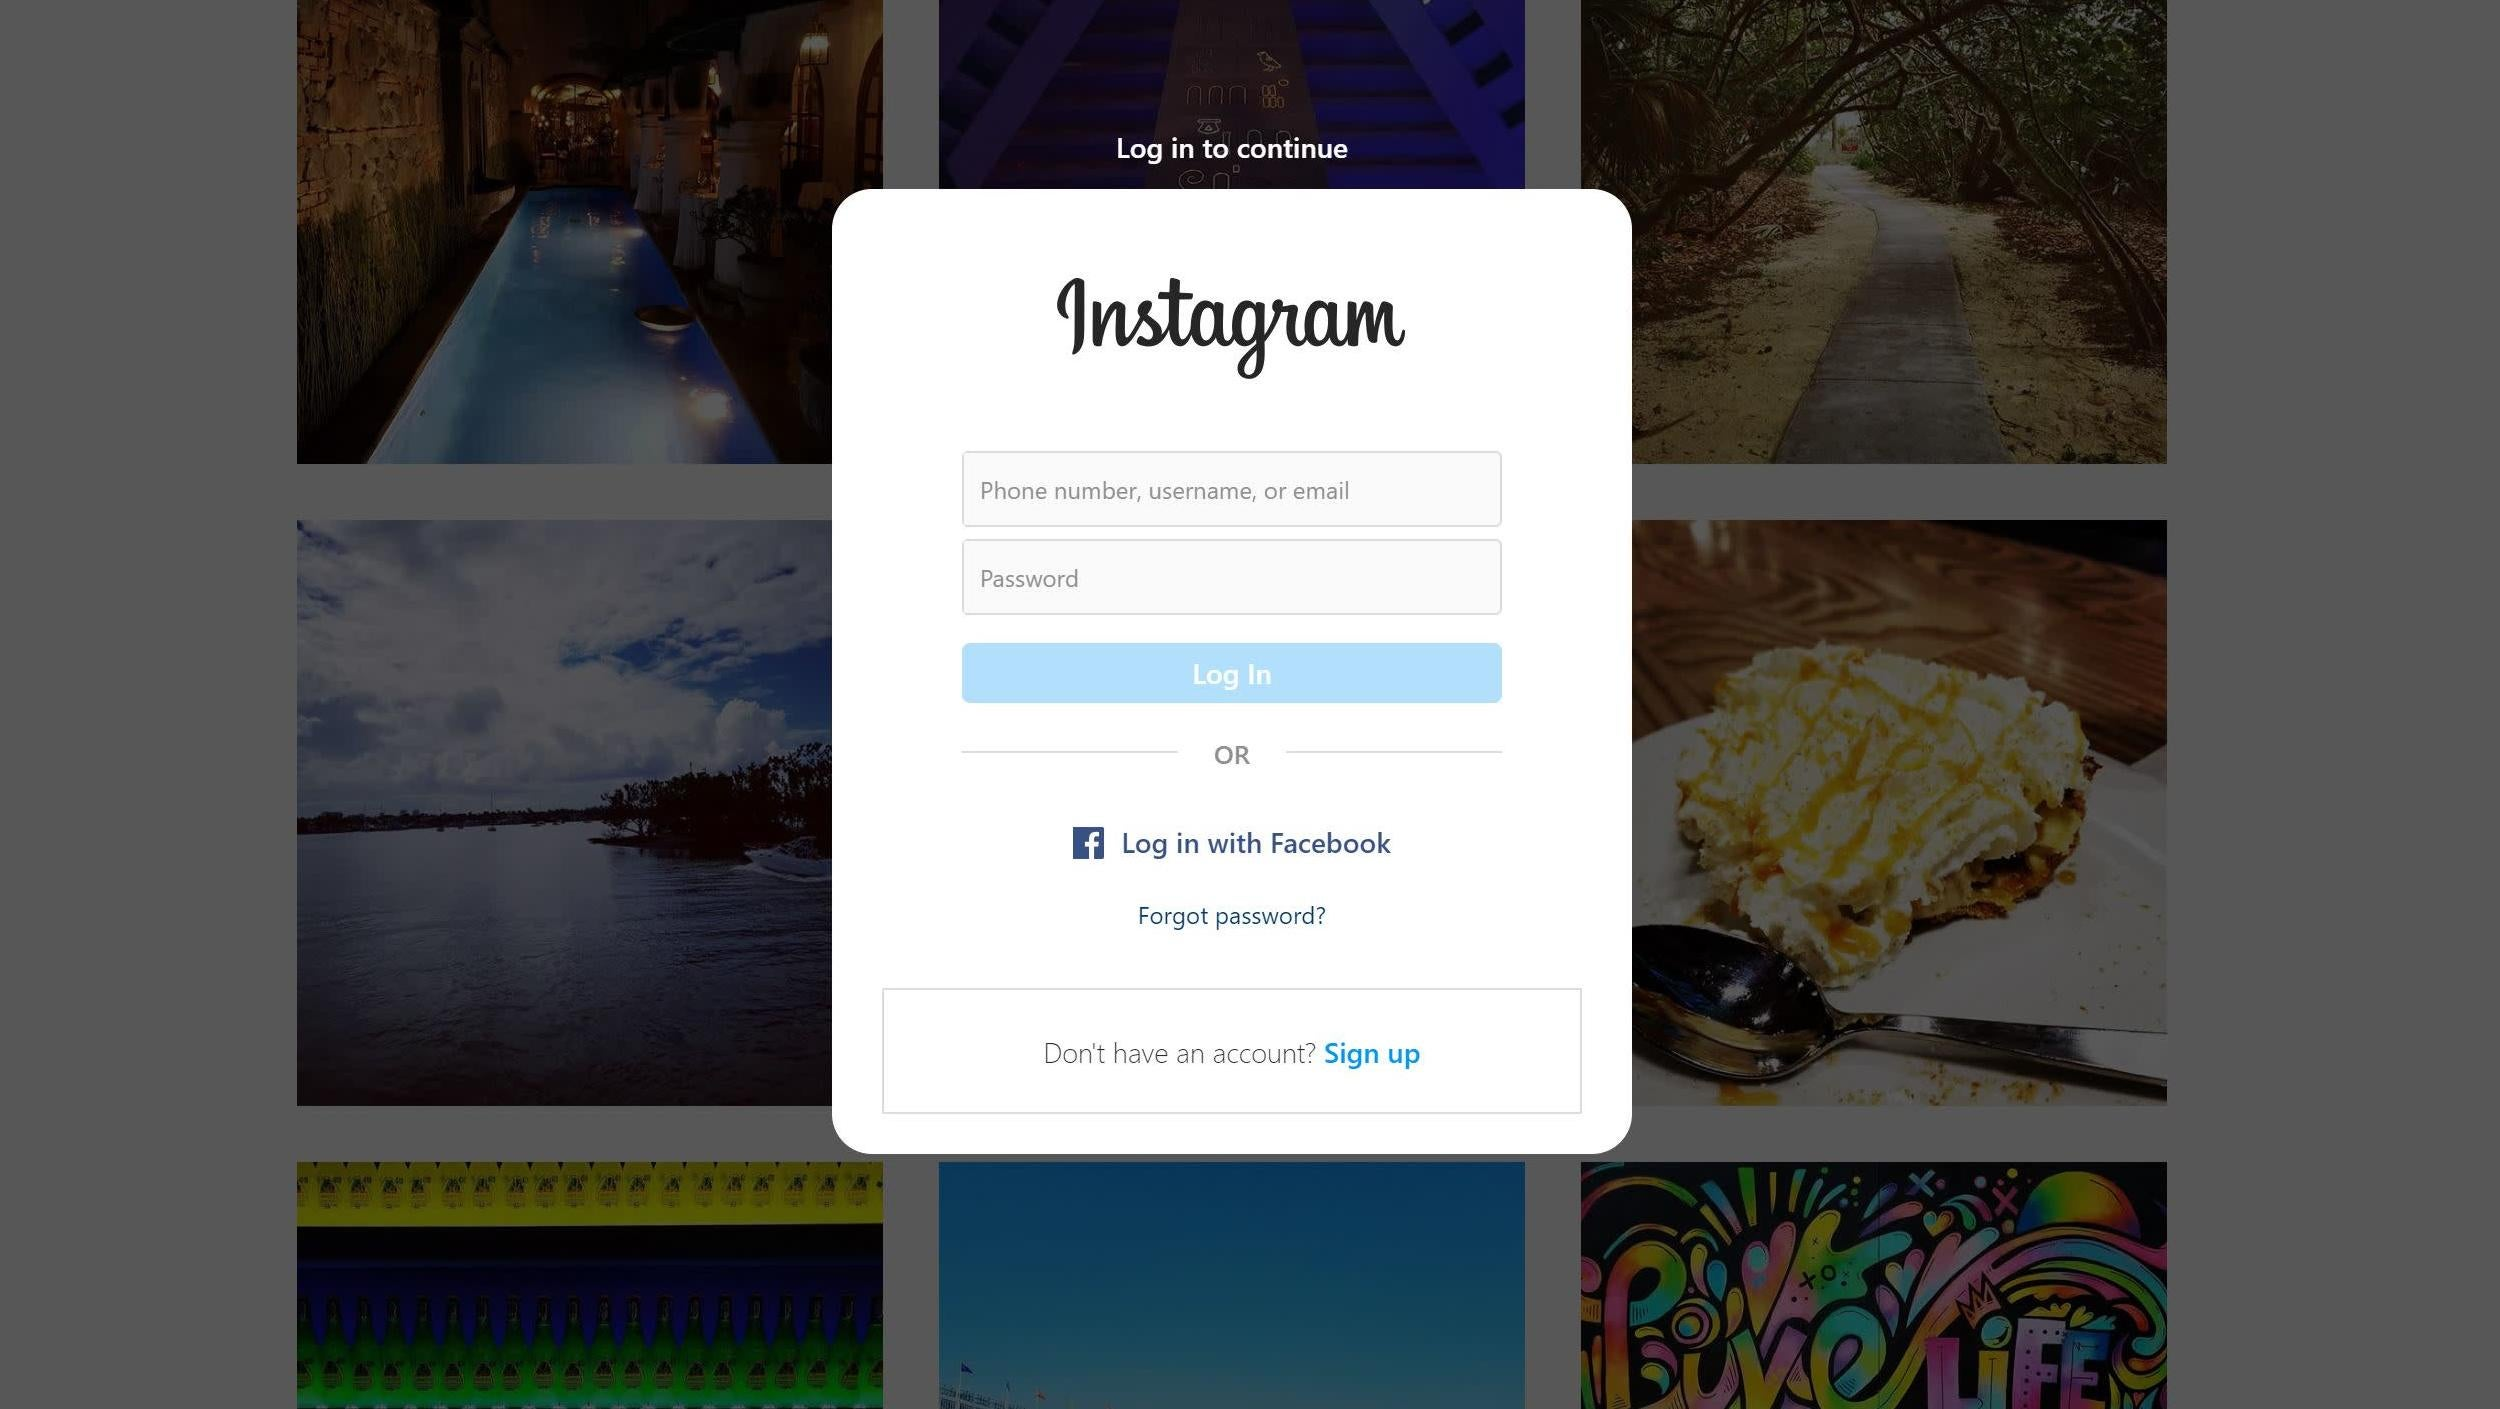 You Can Now Send Instagram DMs From A Browser, But The Desktop Experience Still Sucks